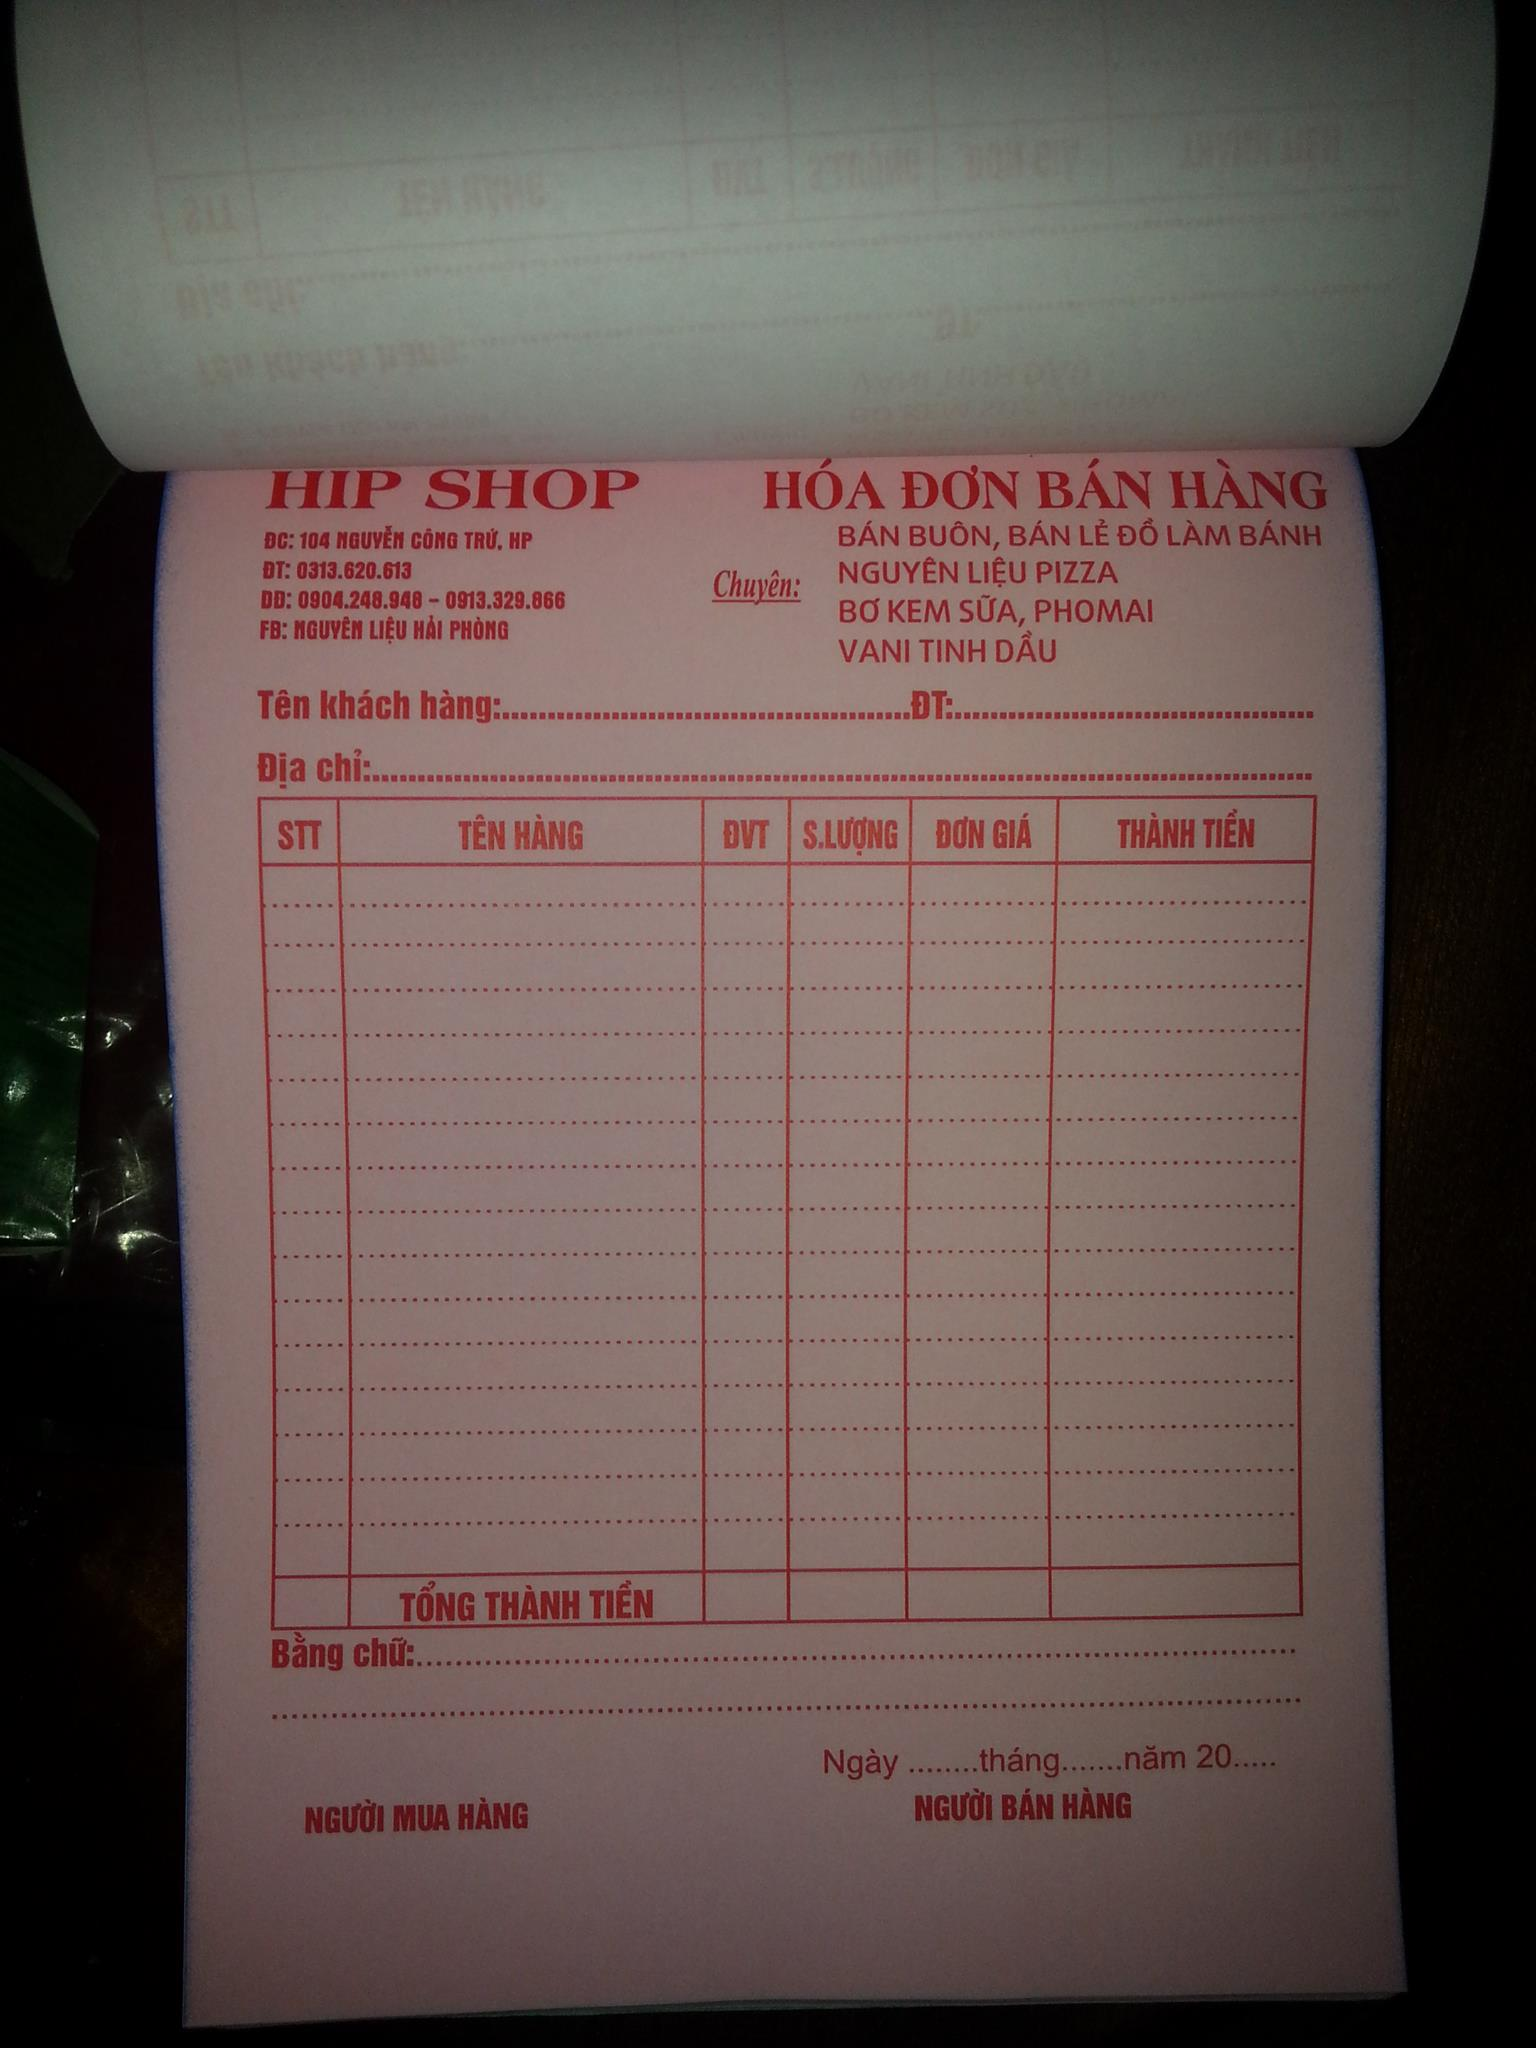 hoa don ban hang hip shop 03